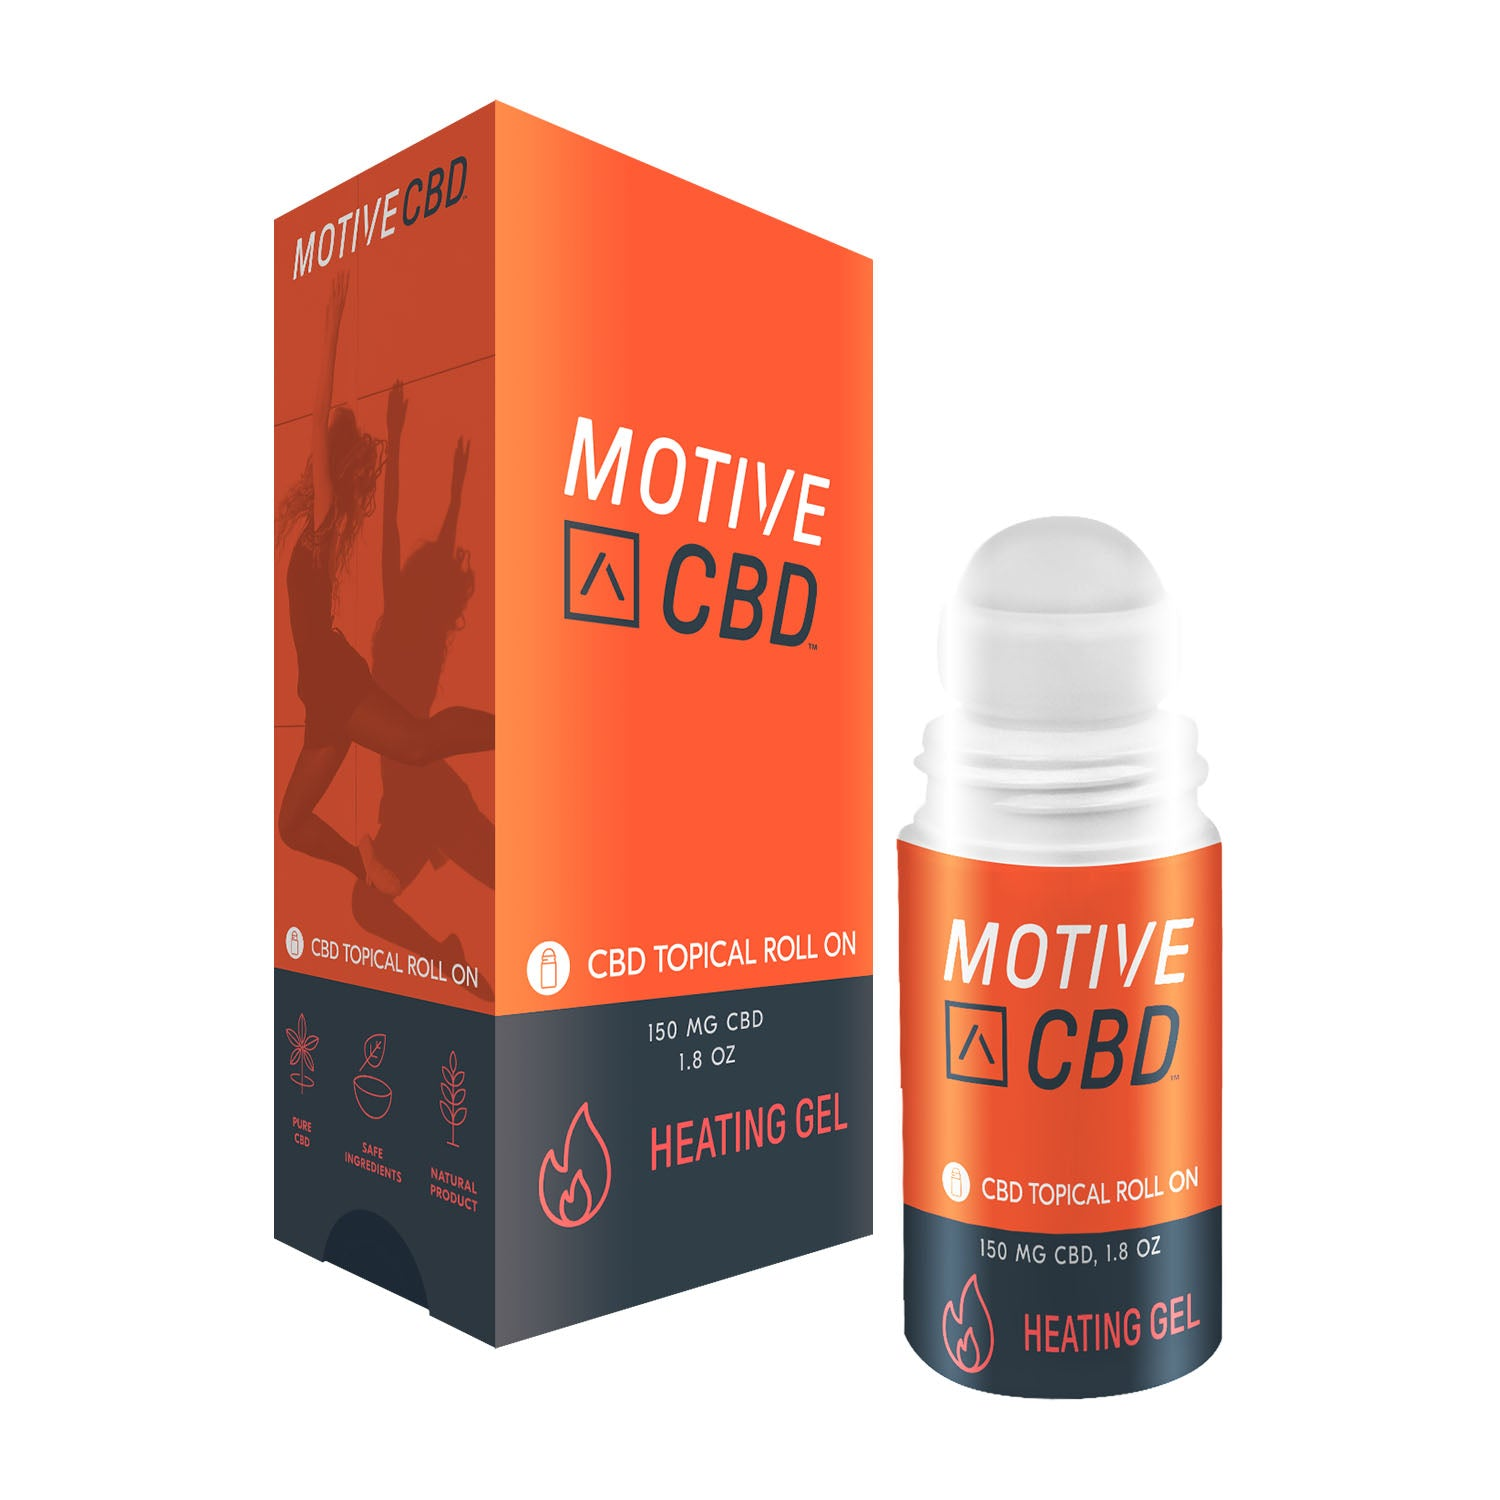 MOTIVE Roll On Heating Gel